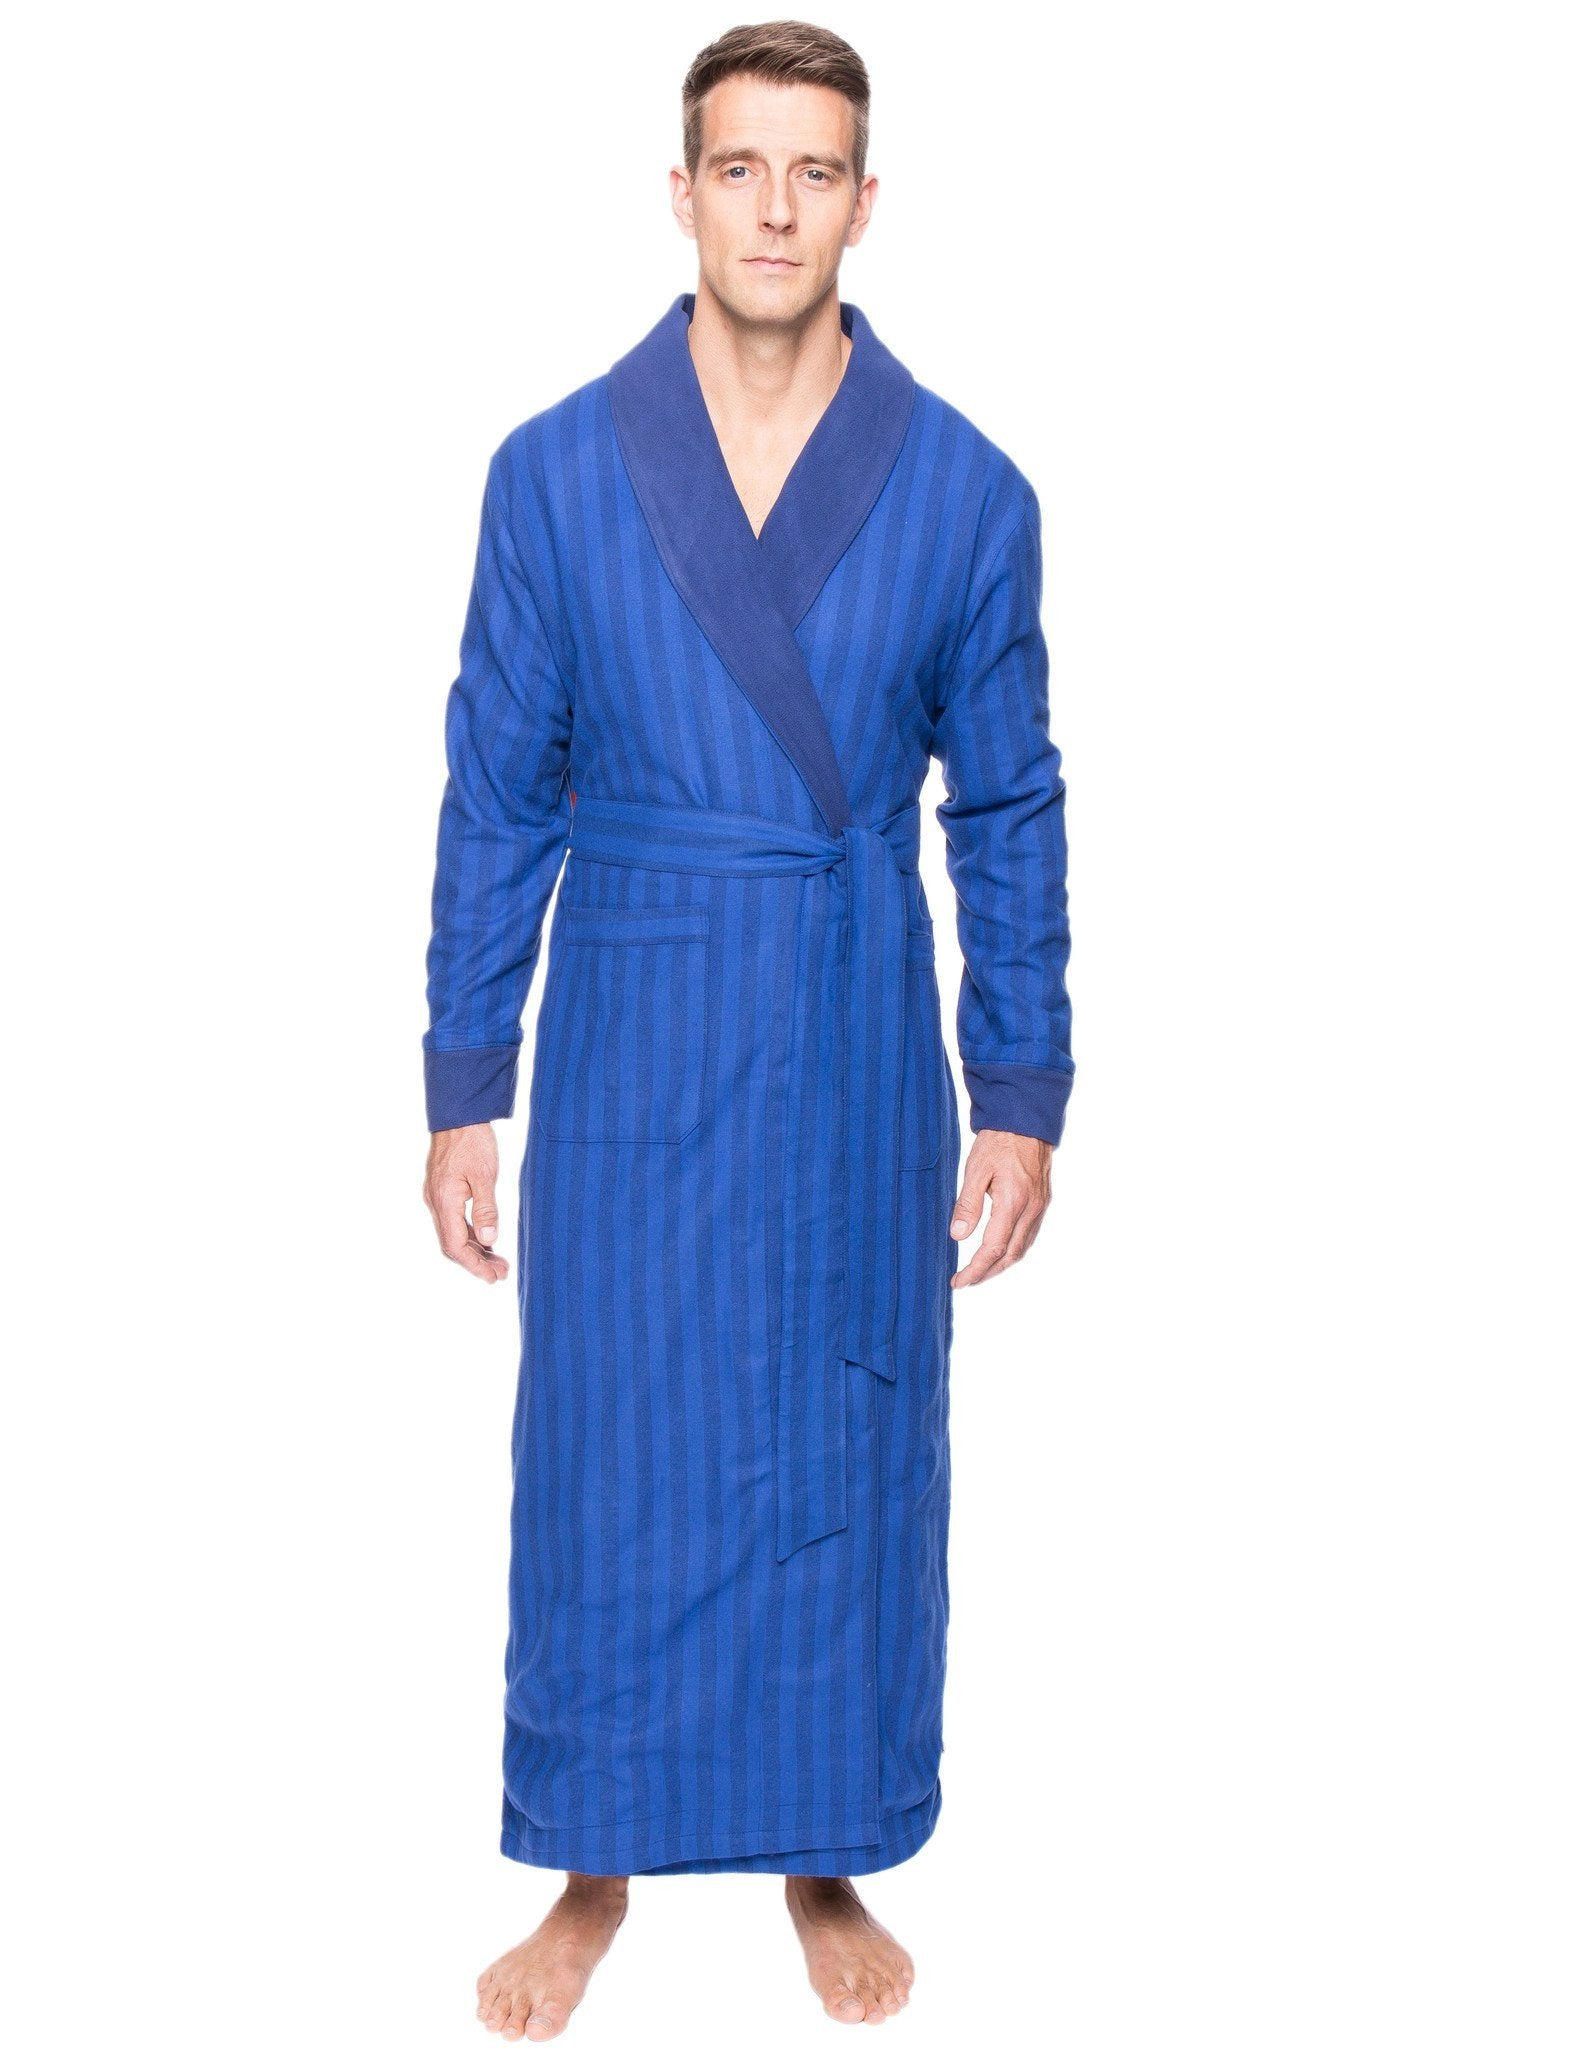 Men's Premium 100% Cotton Flannel Fleece Lined Robe - Stripes Tonal Blue